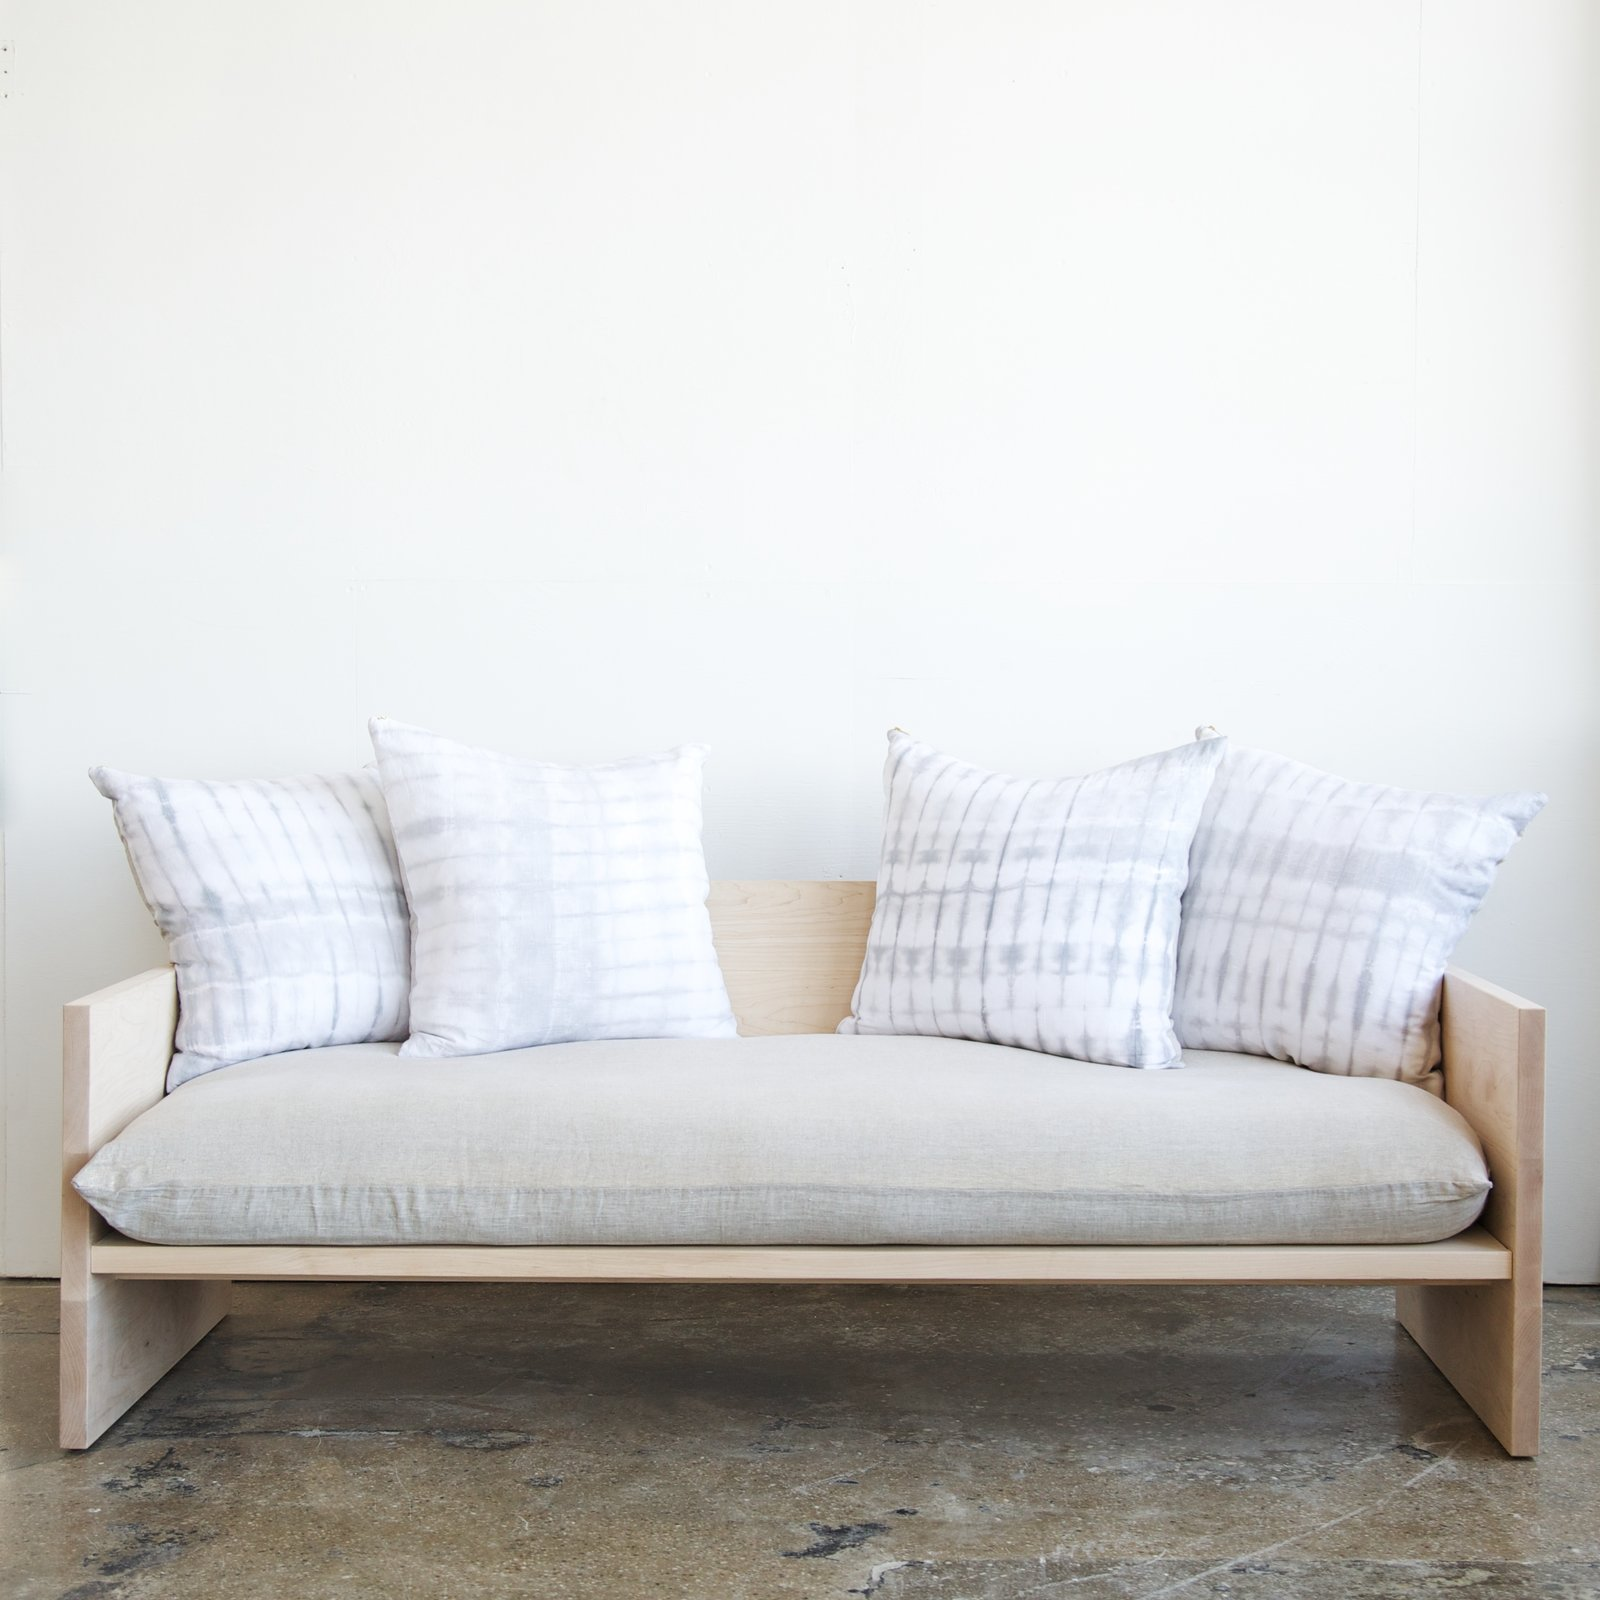 """Maple and brass sofa by Farrah Sit and Rebecca Atwood  This sofa—exclusive to WorkOf—was born out of a collaboration between furniture designer Farrah Sit and textile designer Rebecca Atwood. The frame is Sit's; the upholstery Atwood's. """"A lot of overlaps exist in their tastes and their styles,"""" Neamonitis says. Photo by Emily Johnston.  Photo 5 of 6 in WorkOf: Building a Community of Brooklyn Makers"""